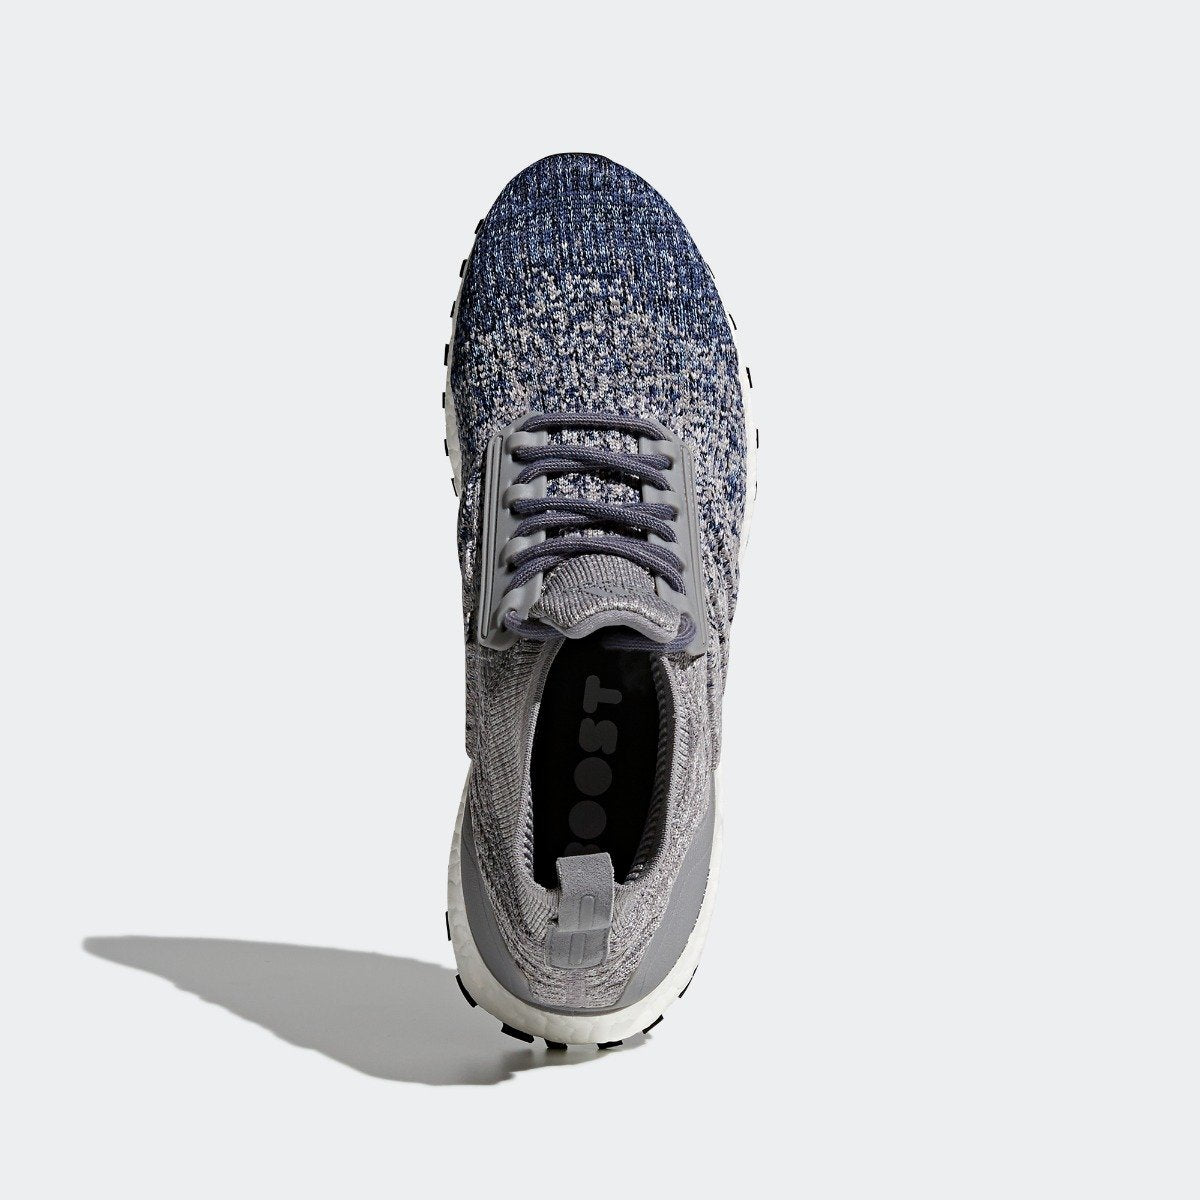 421b44b1e4a704 Men s adidas Running Ultraboost All Terrain Shoes Grey with Noble Indigo. 1